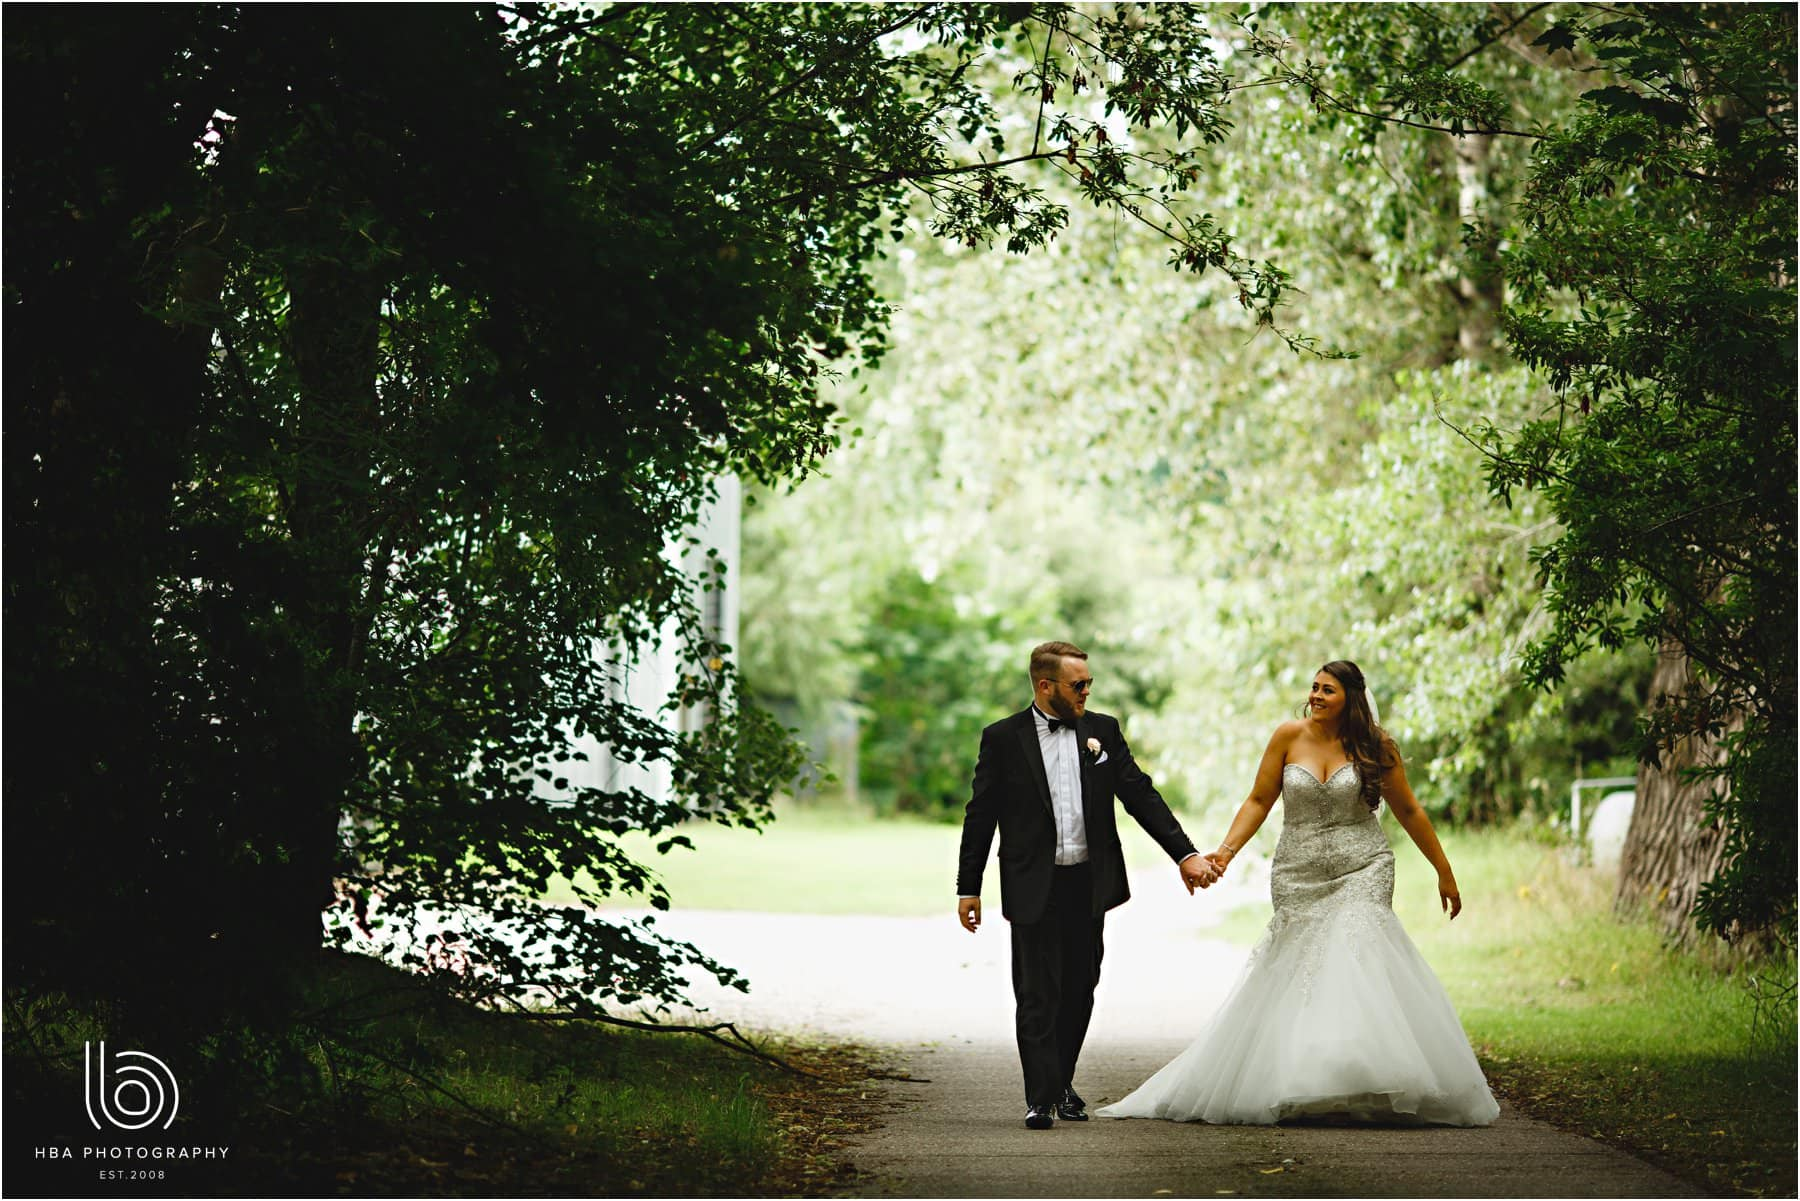 the bride & groom walking in the woods